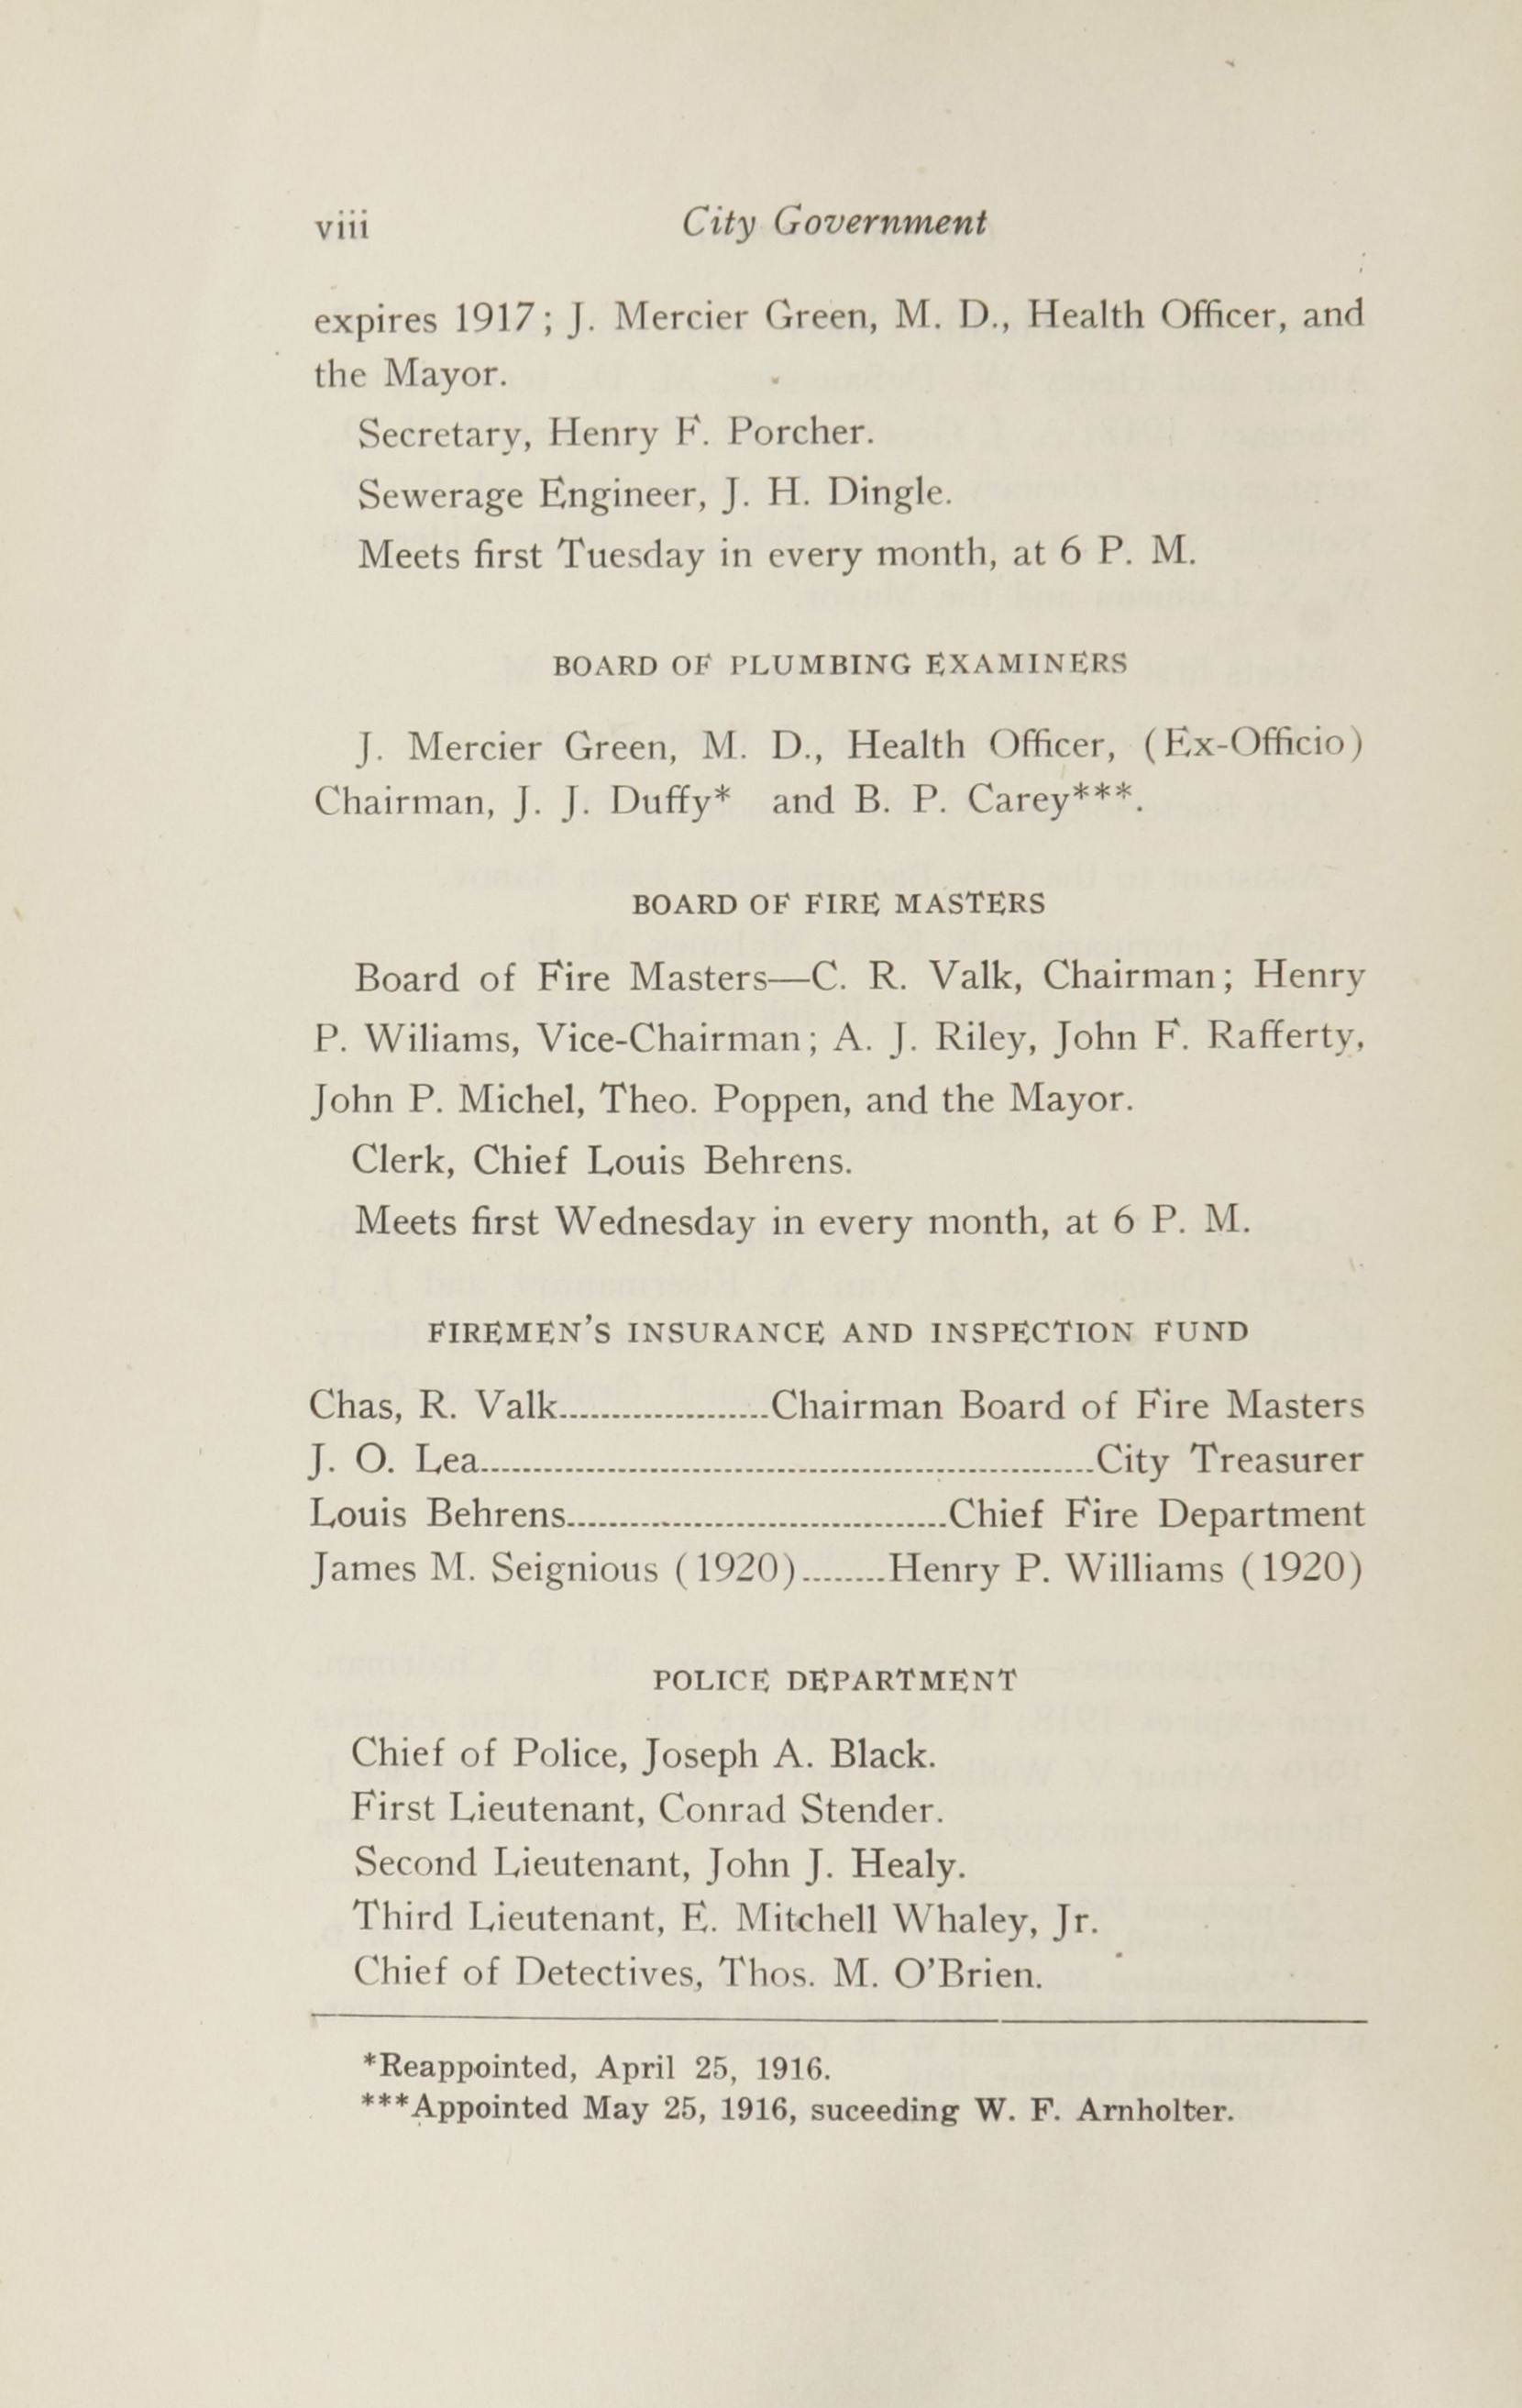 Charleston Yearbook, 1916, page viii